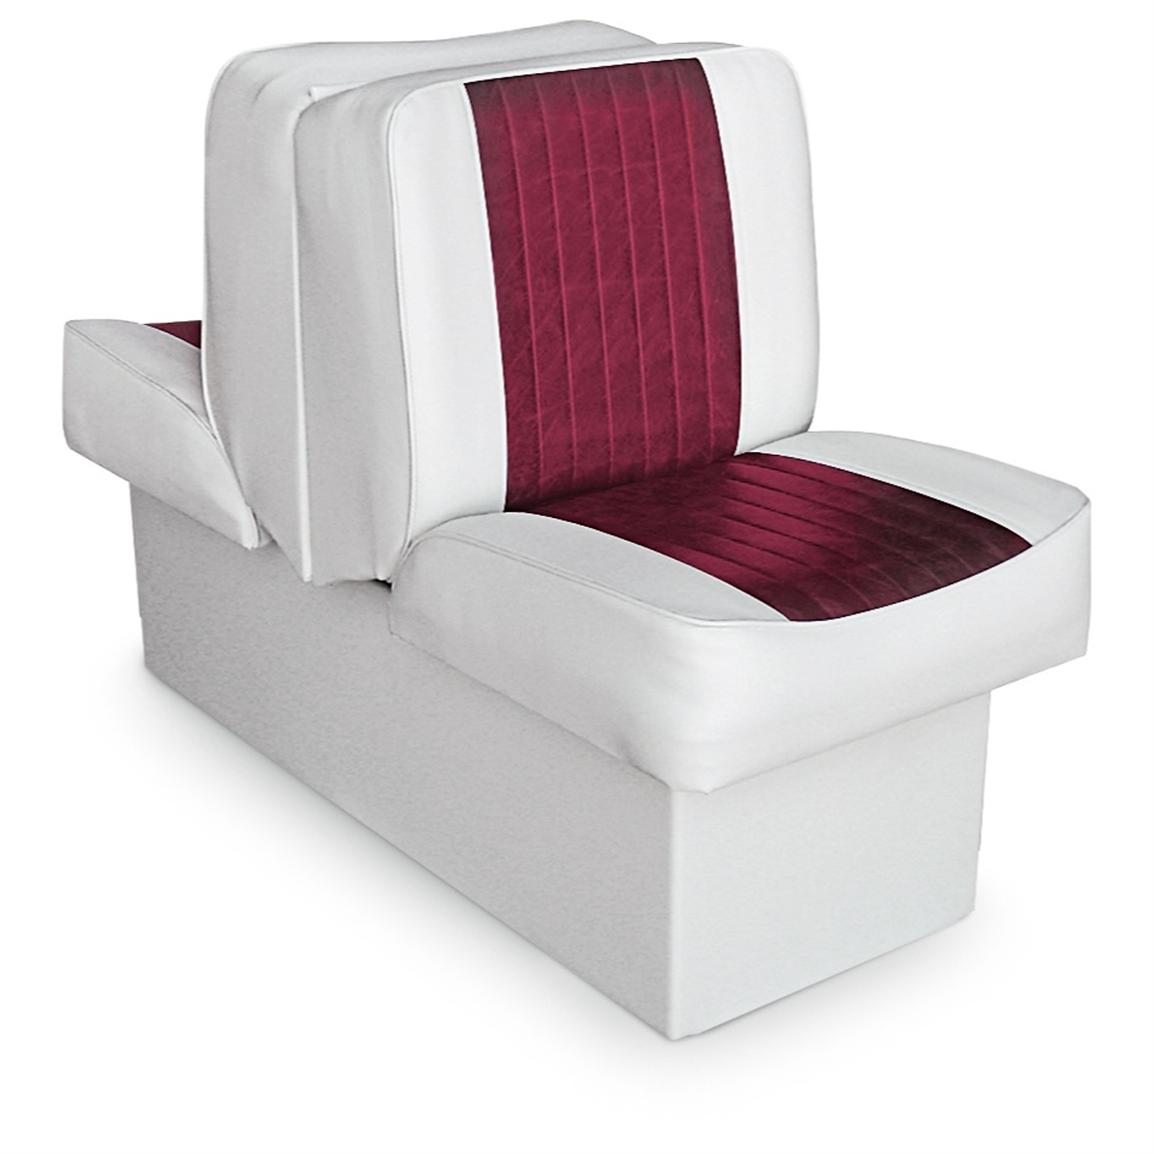 Wise Deluxe Boat Lounge Seat, White / Red